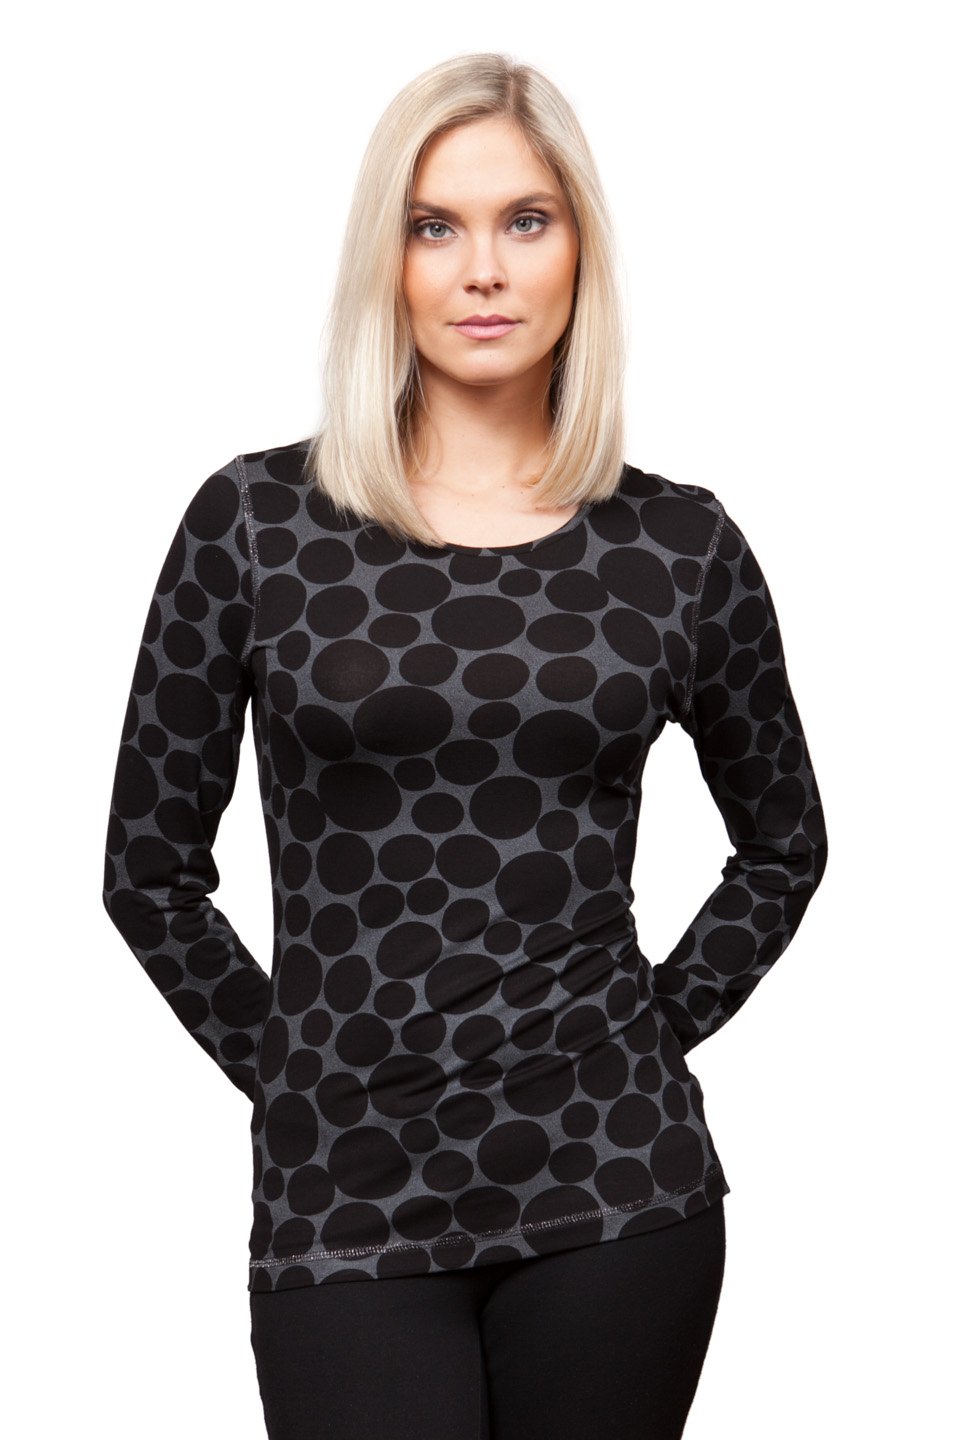 Copy of Style # 25270-16, p. 7<br>Dot Foil Print<br>Pattern: Dots <br> &nbsp